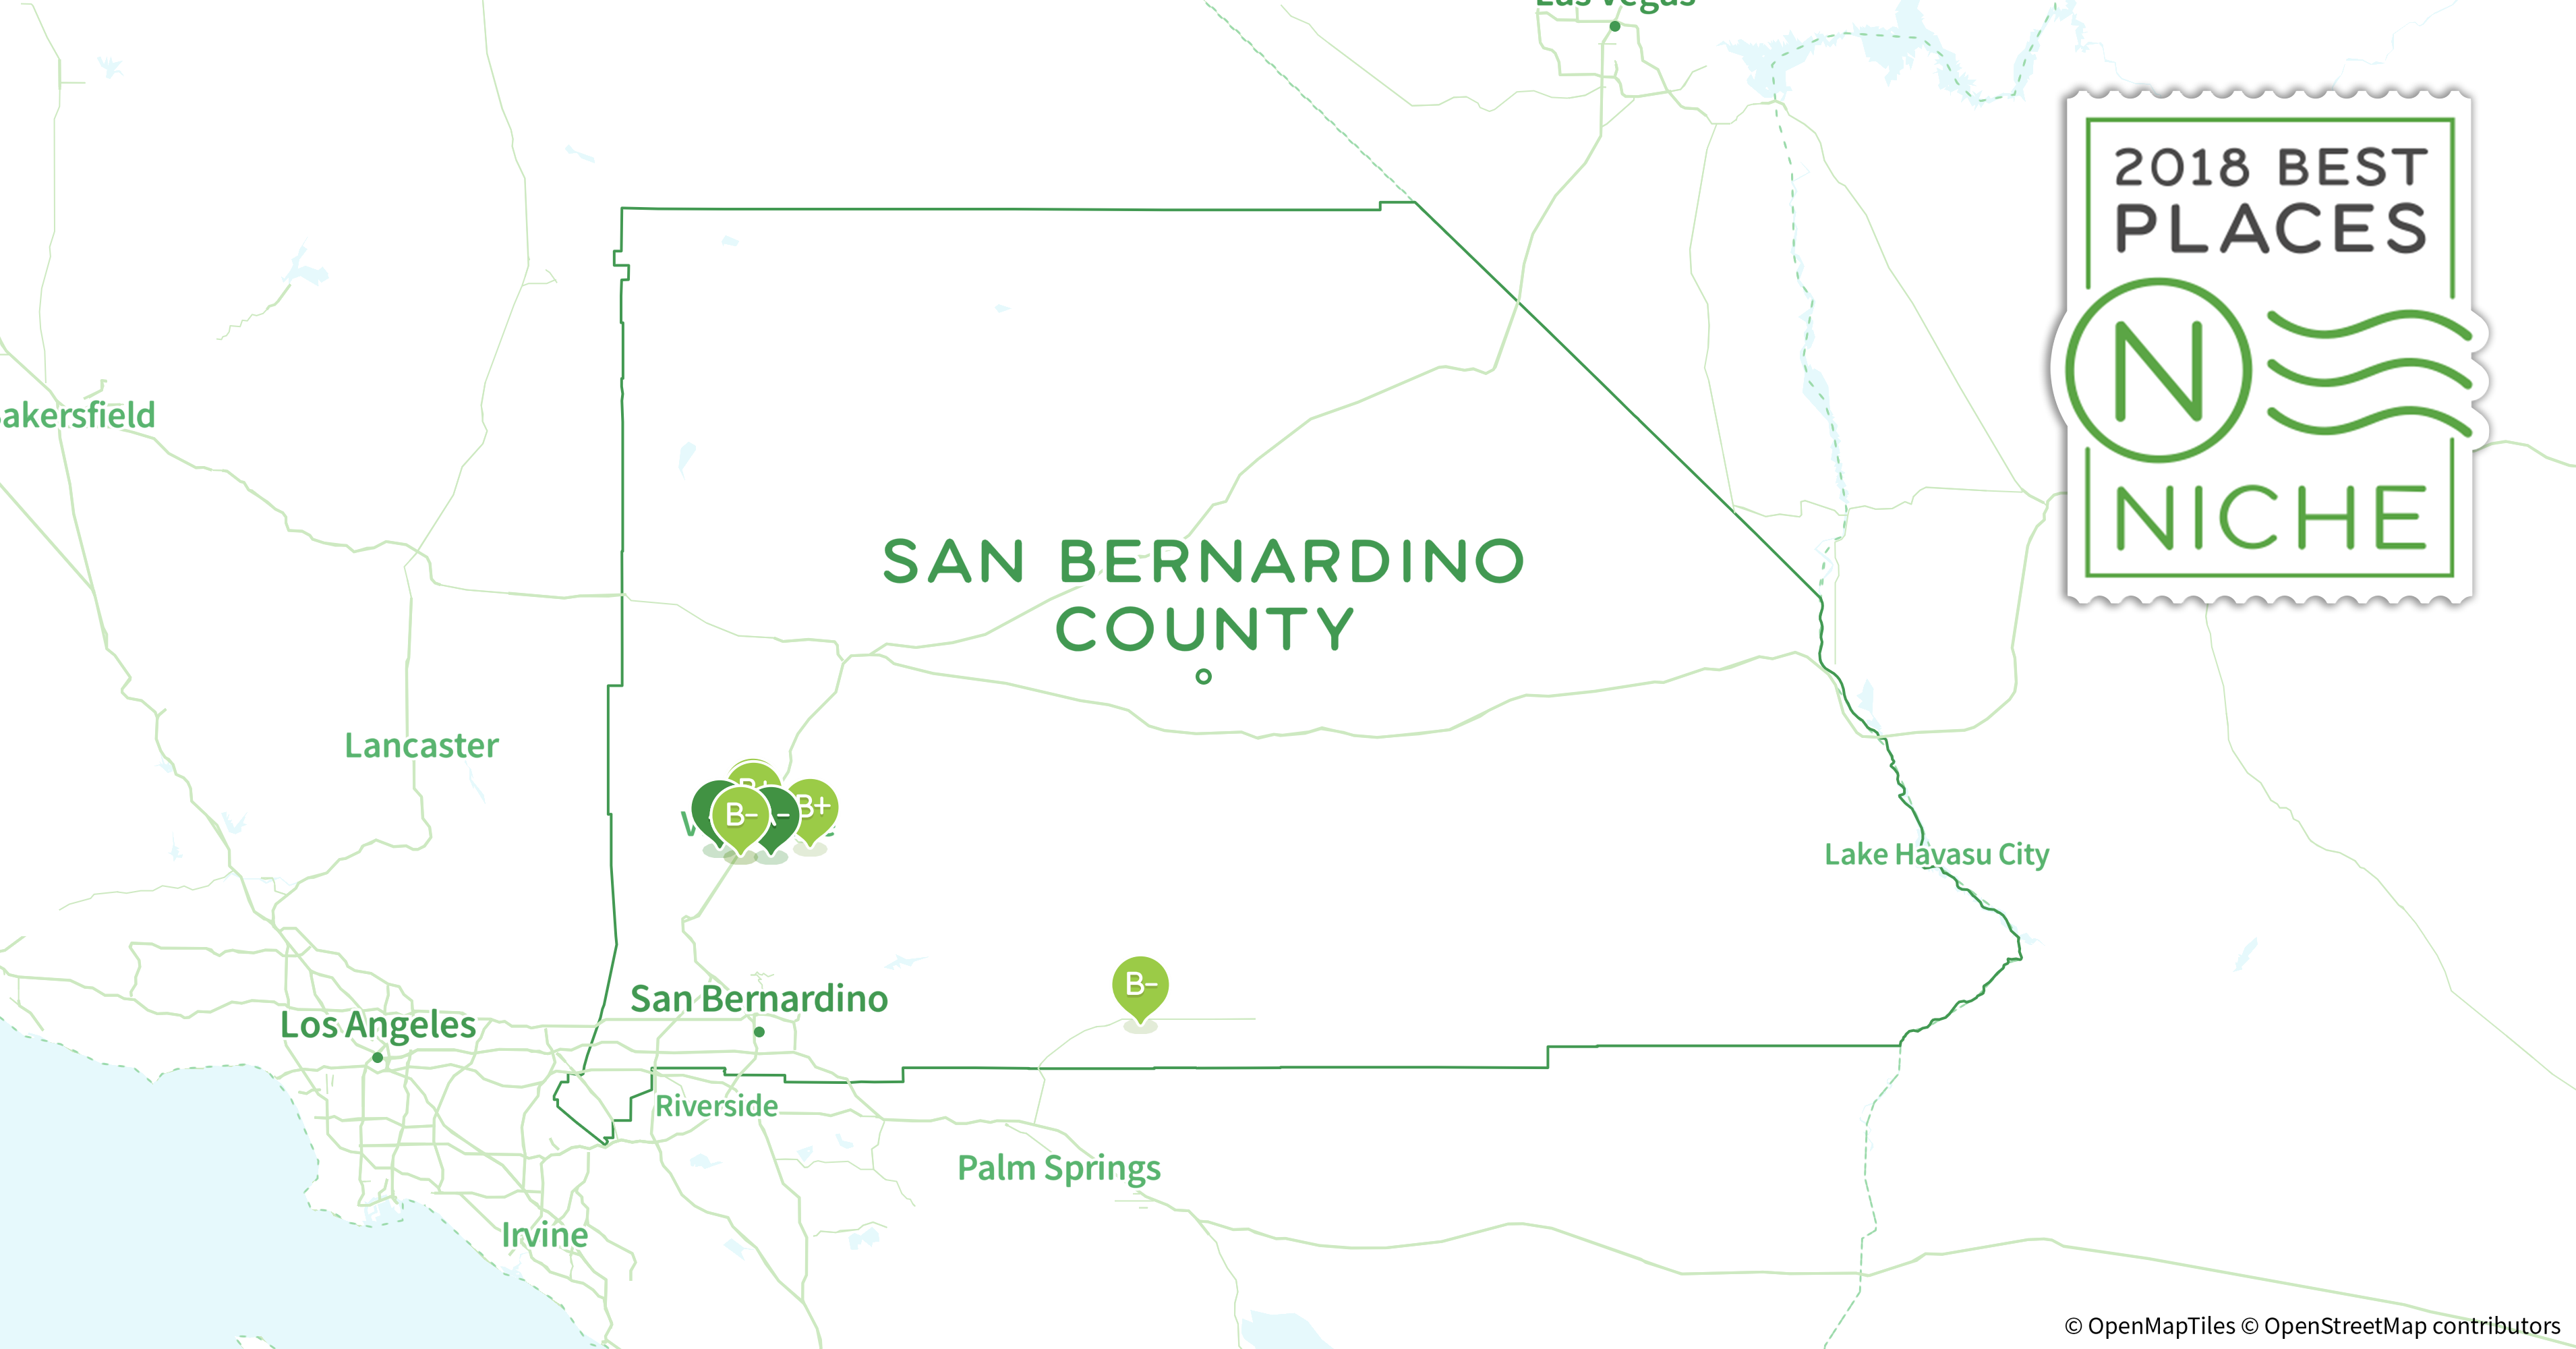 2018 Best Places To Live In San Bernardino County Ca Niche